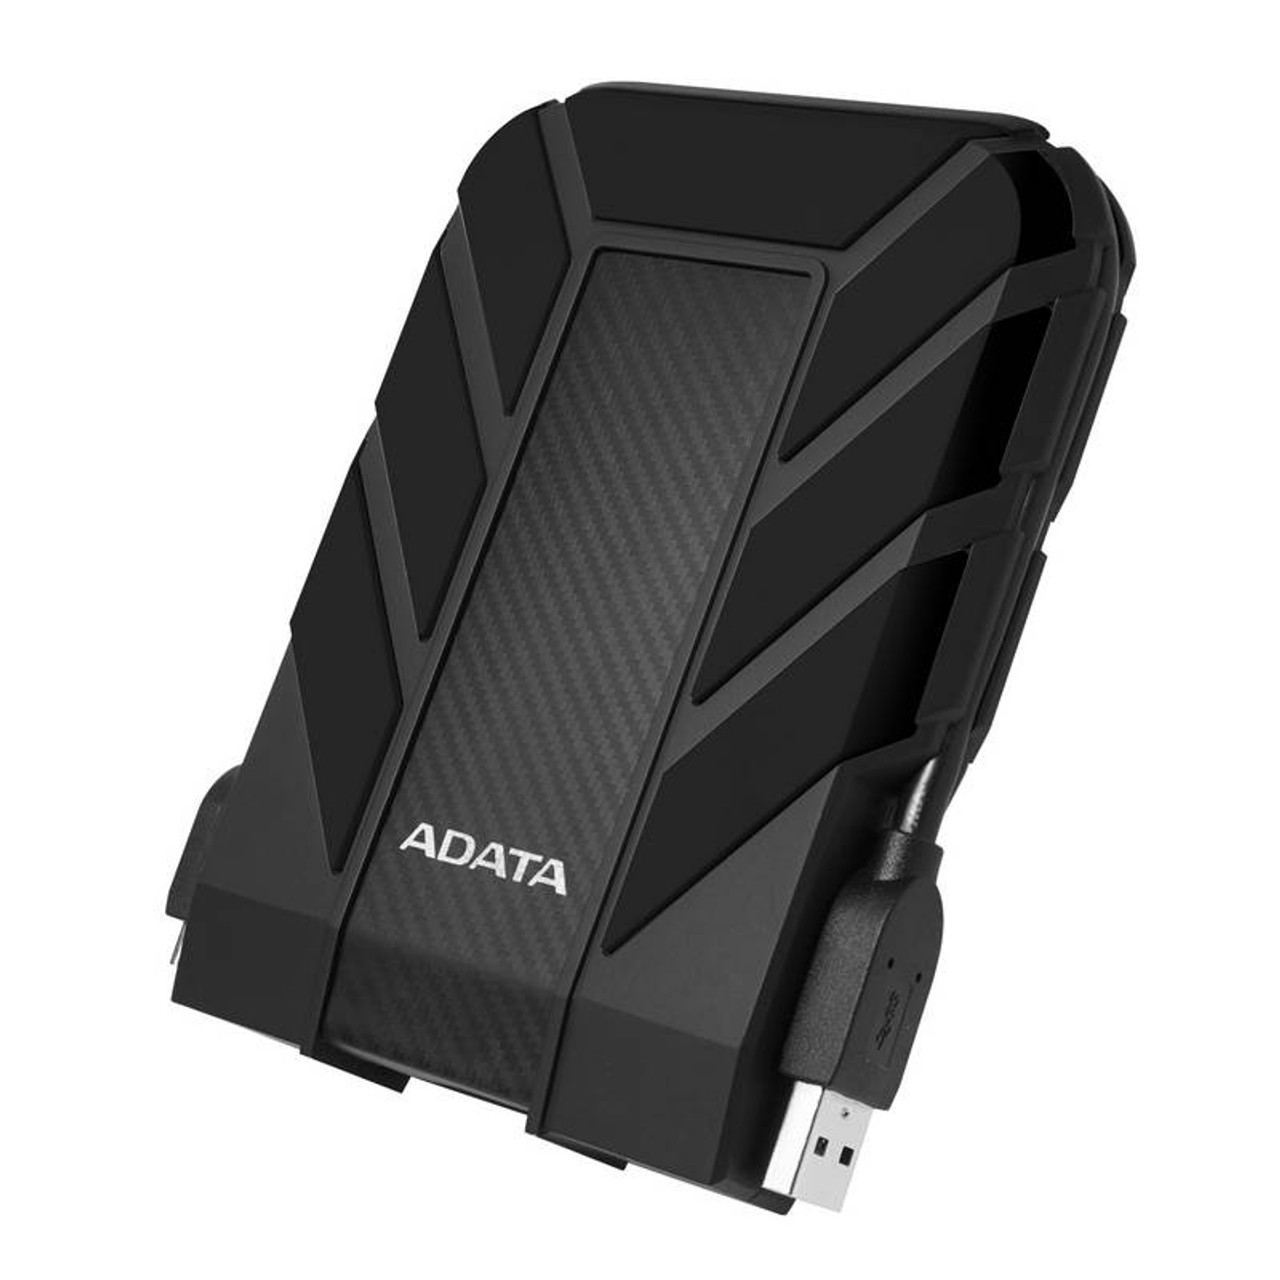 Image for Adata Rugged Pro HD710 1TB USB 3.0 Portable External Hard Drive - Black CX Computer Superstore